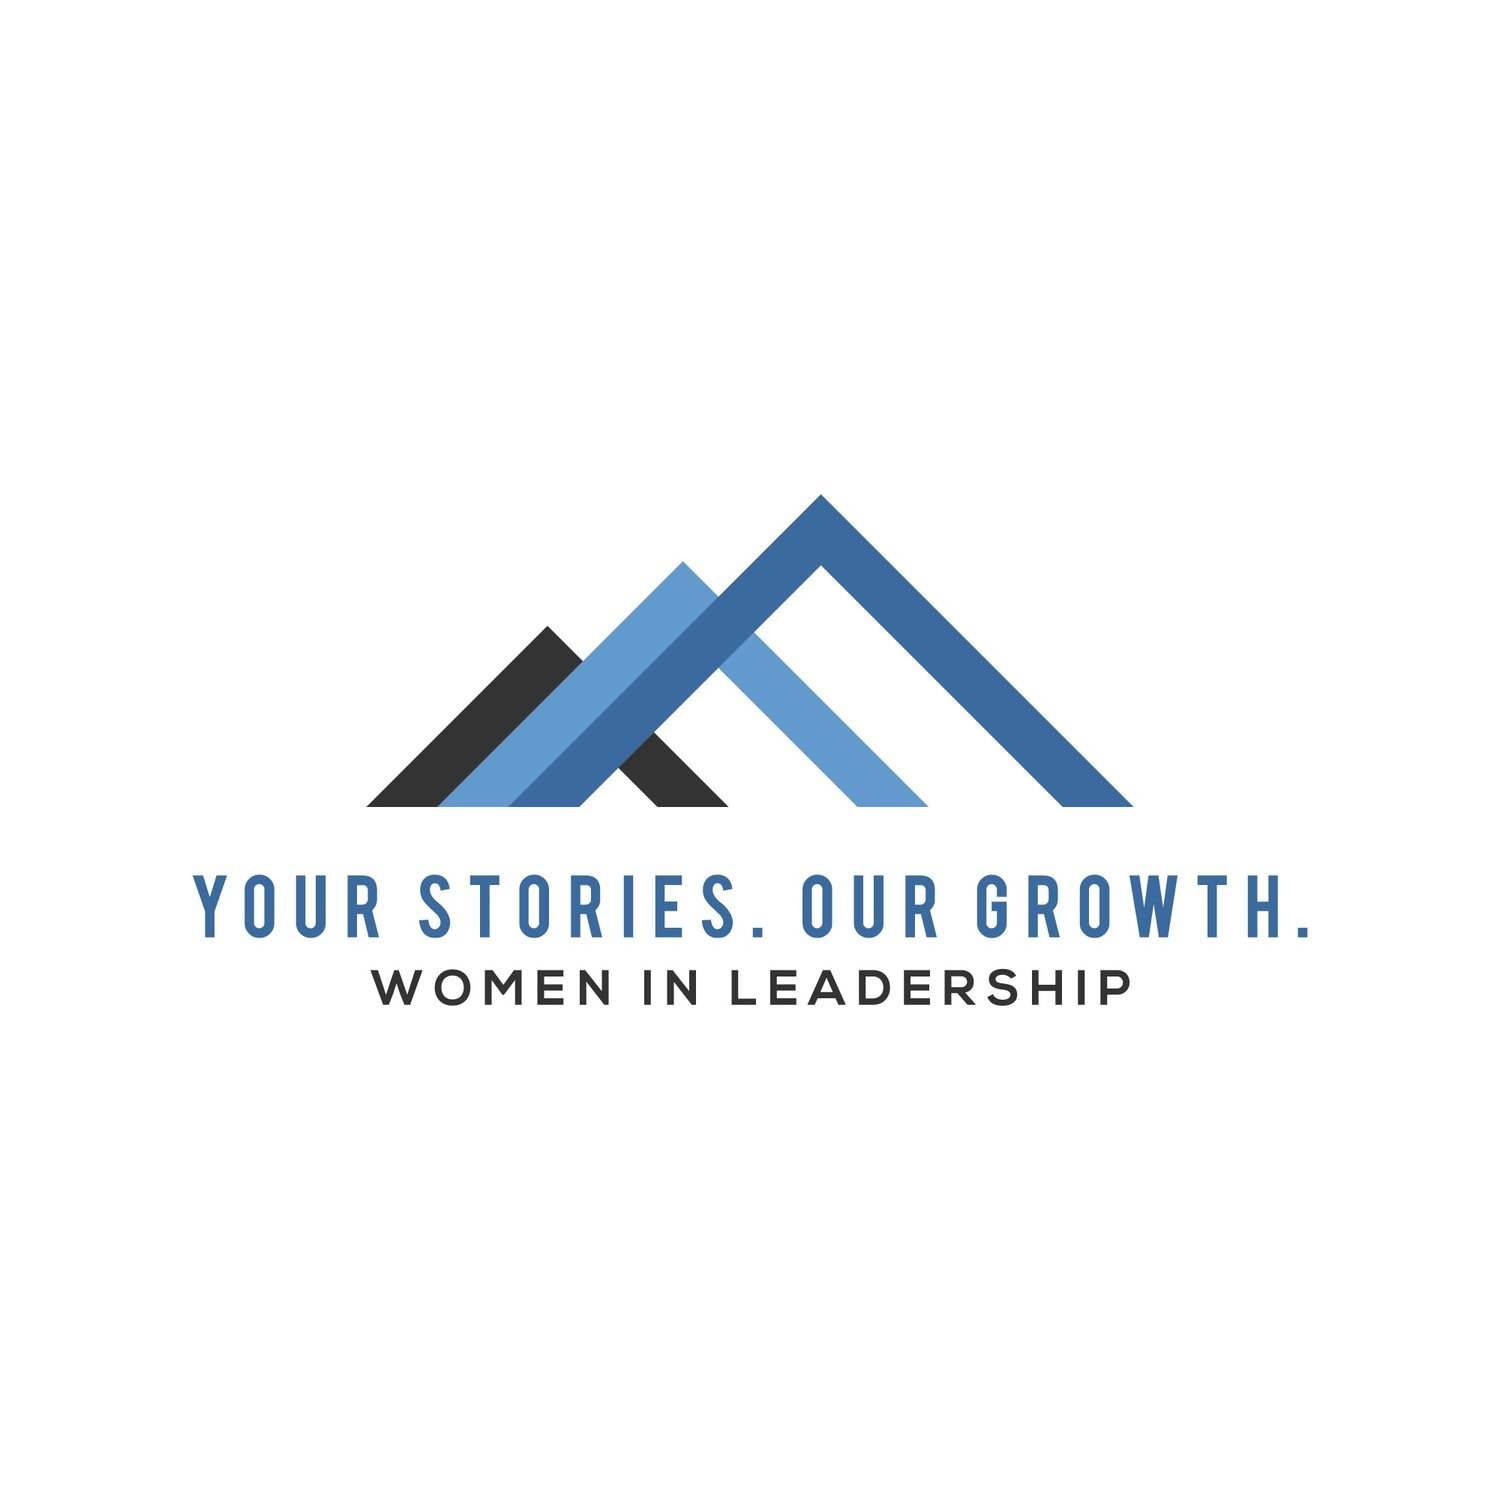 Your Stories. Our Growth.